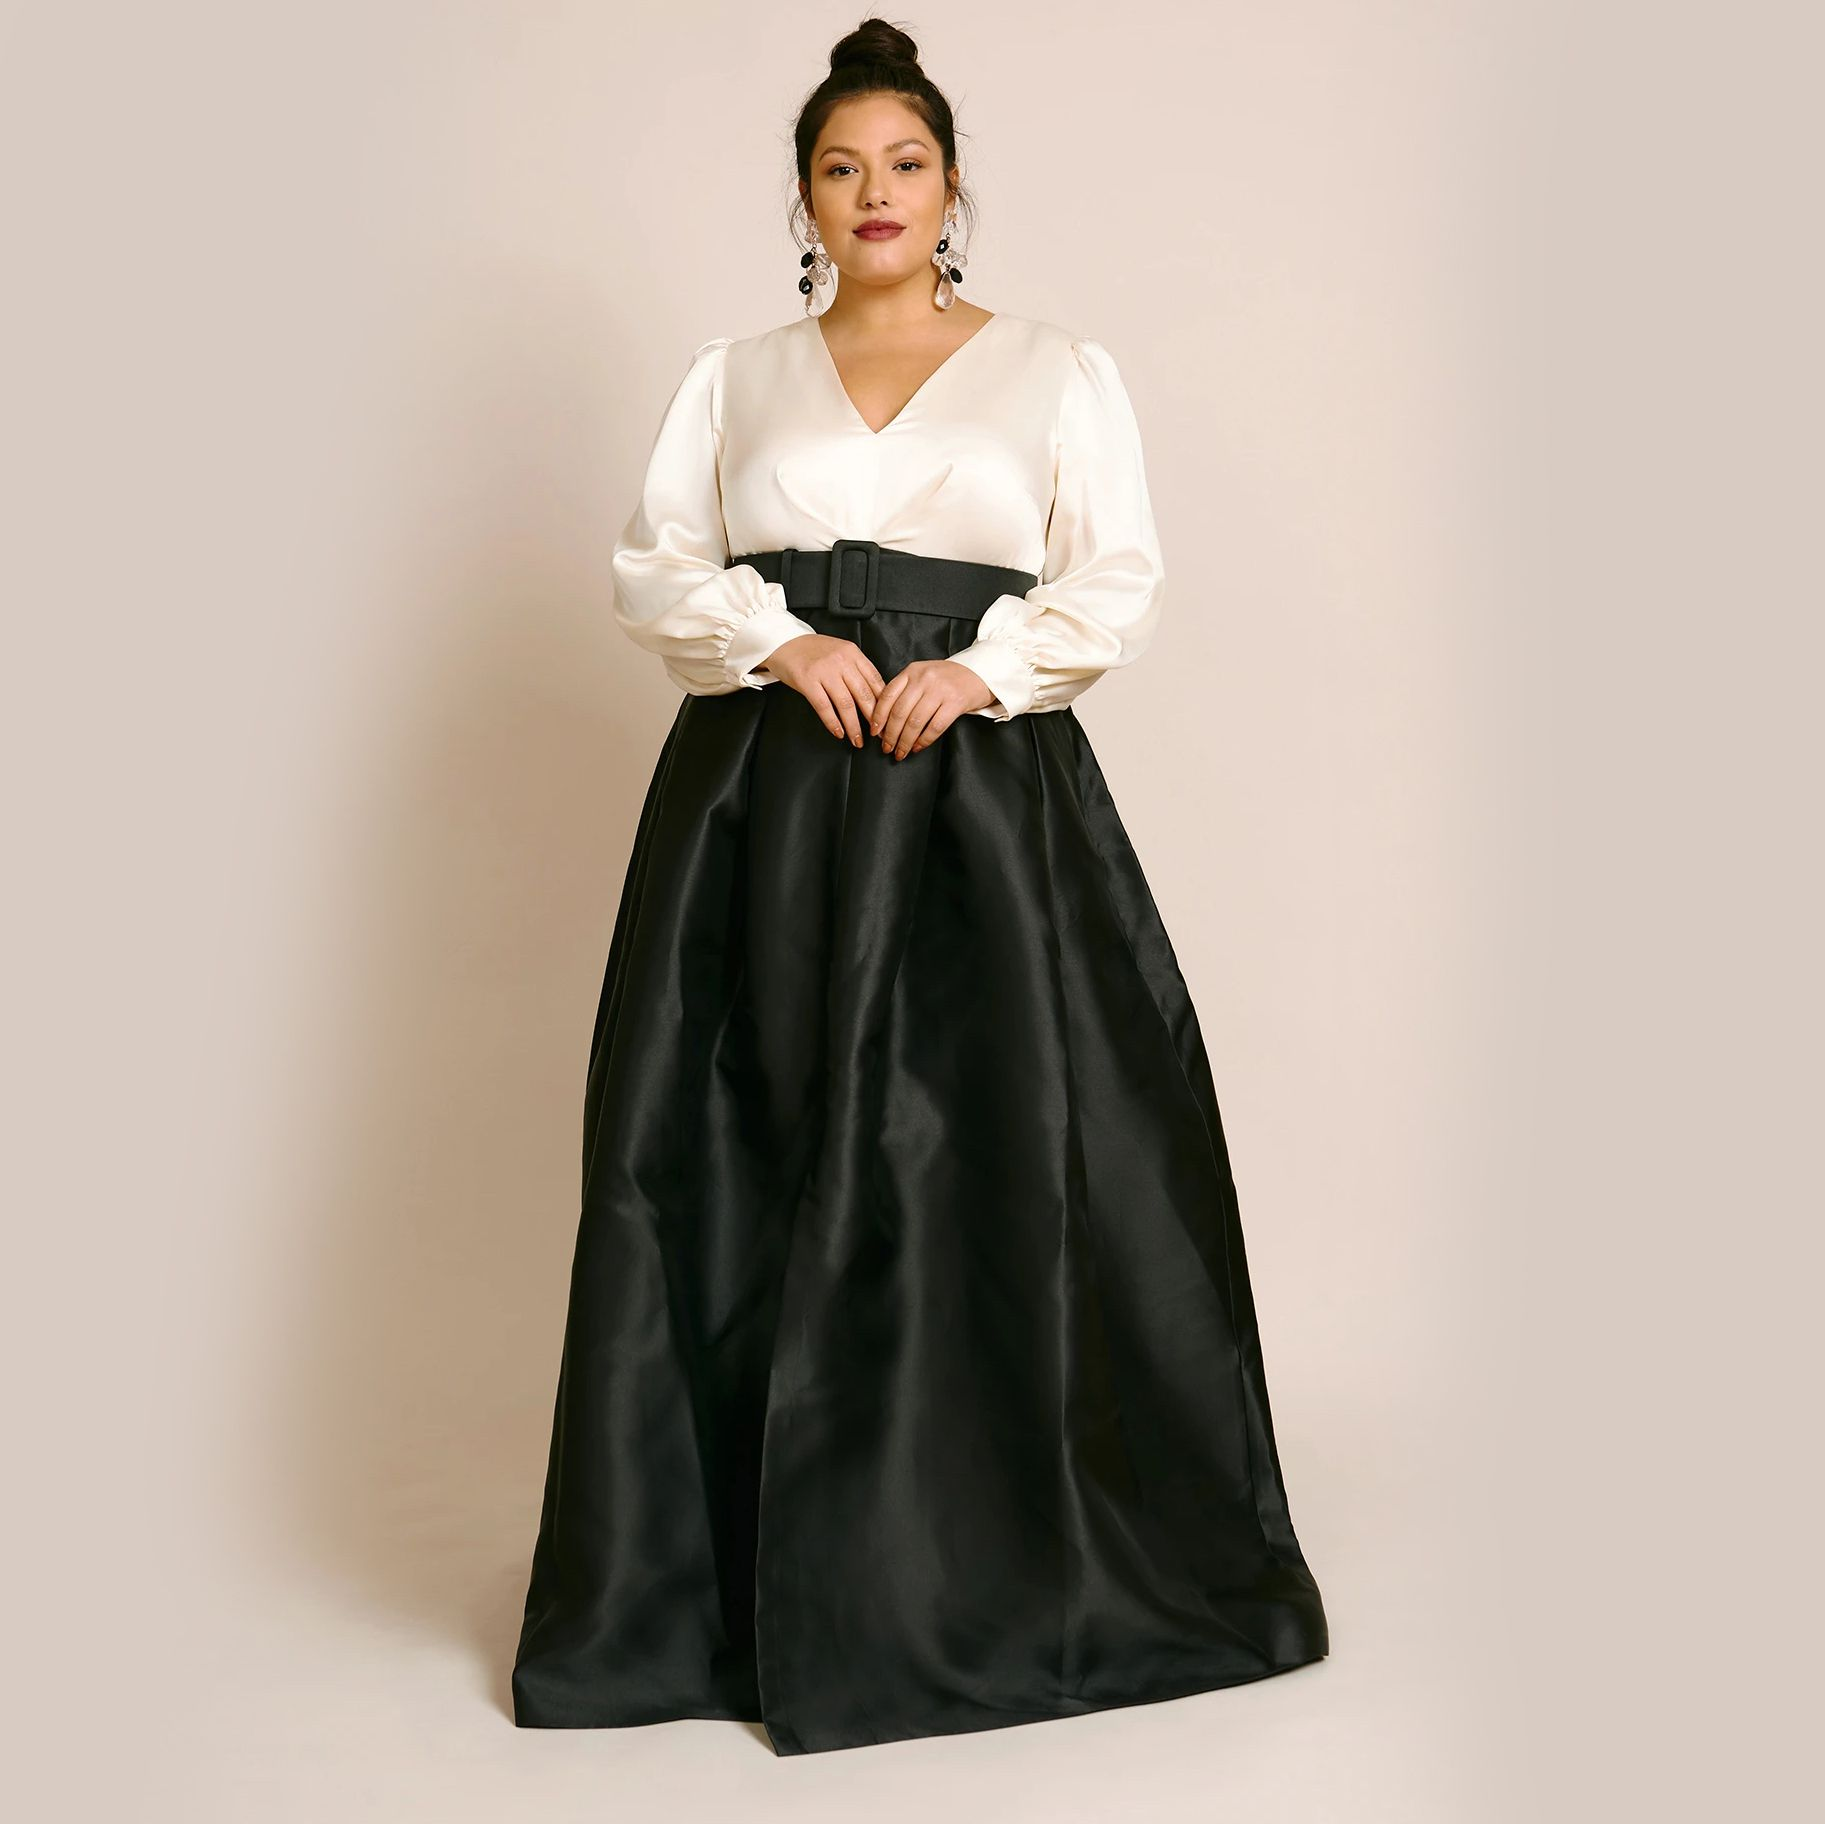 4 Best Plus Size Mother of the Groom Dresses of 4